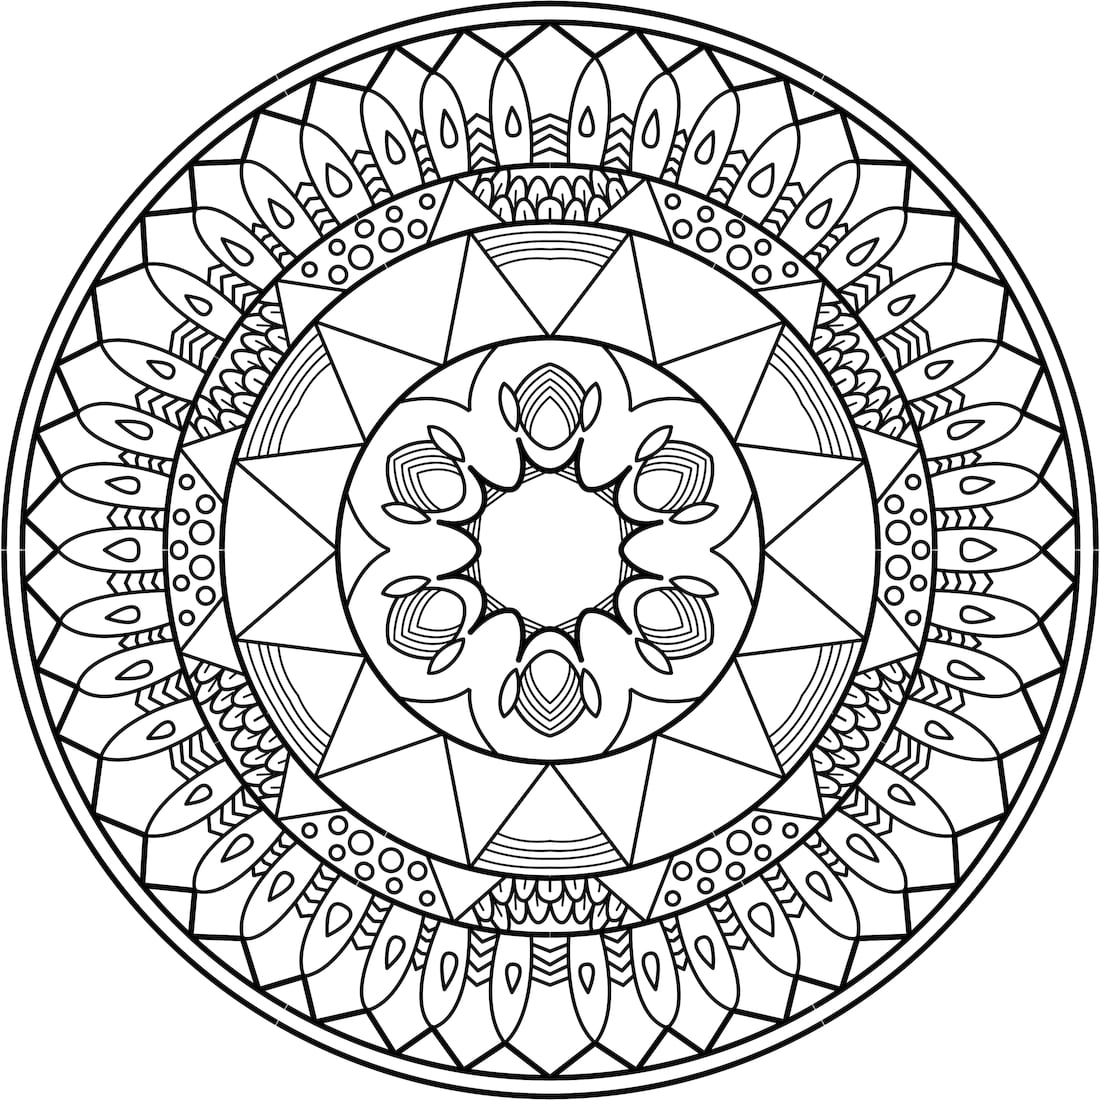 Into the Sun Coloring Page